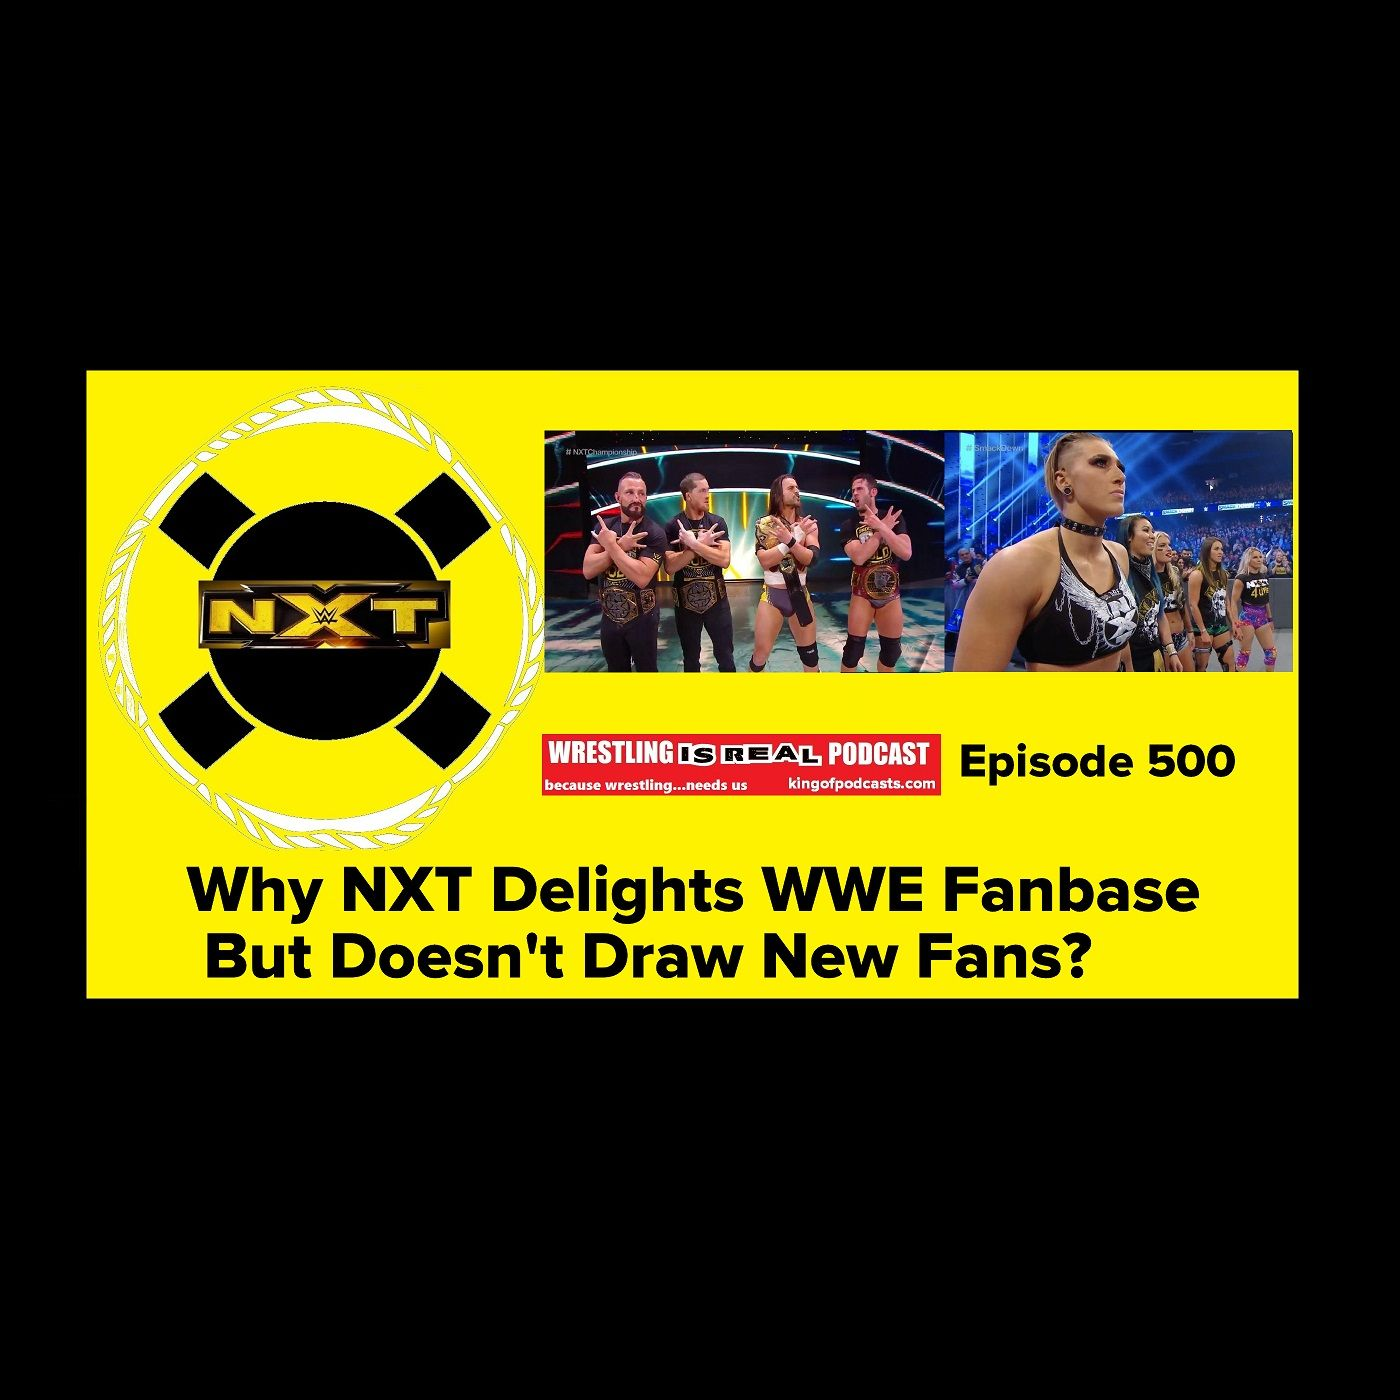 Why NXT Delights WWE Fanbase, But Doesn't Draw New Fans (500th Episode) KOP112819-500